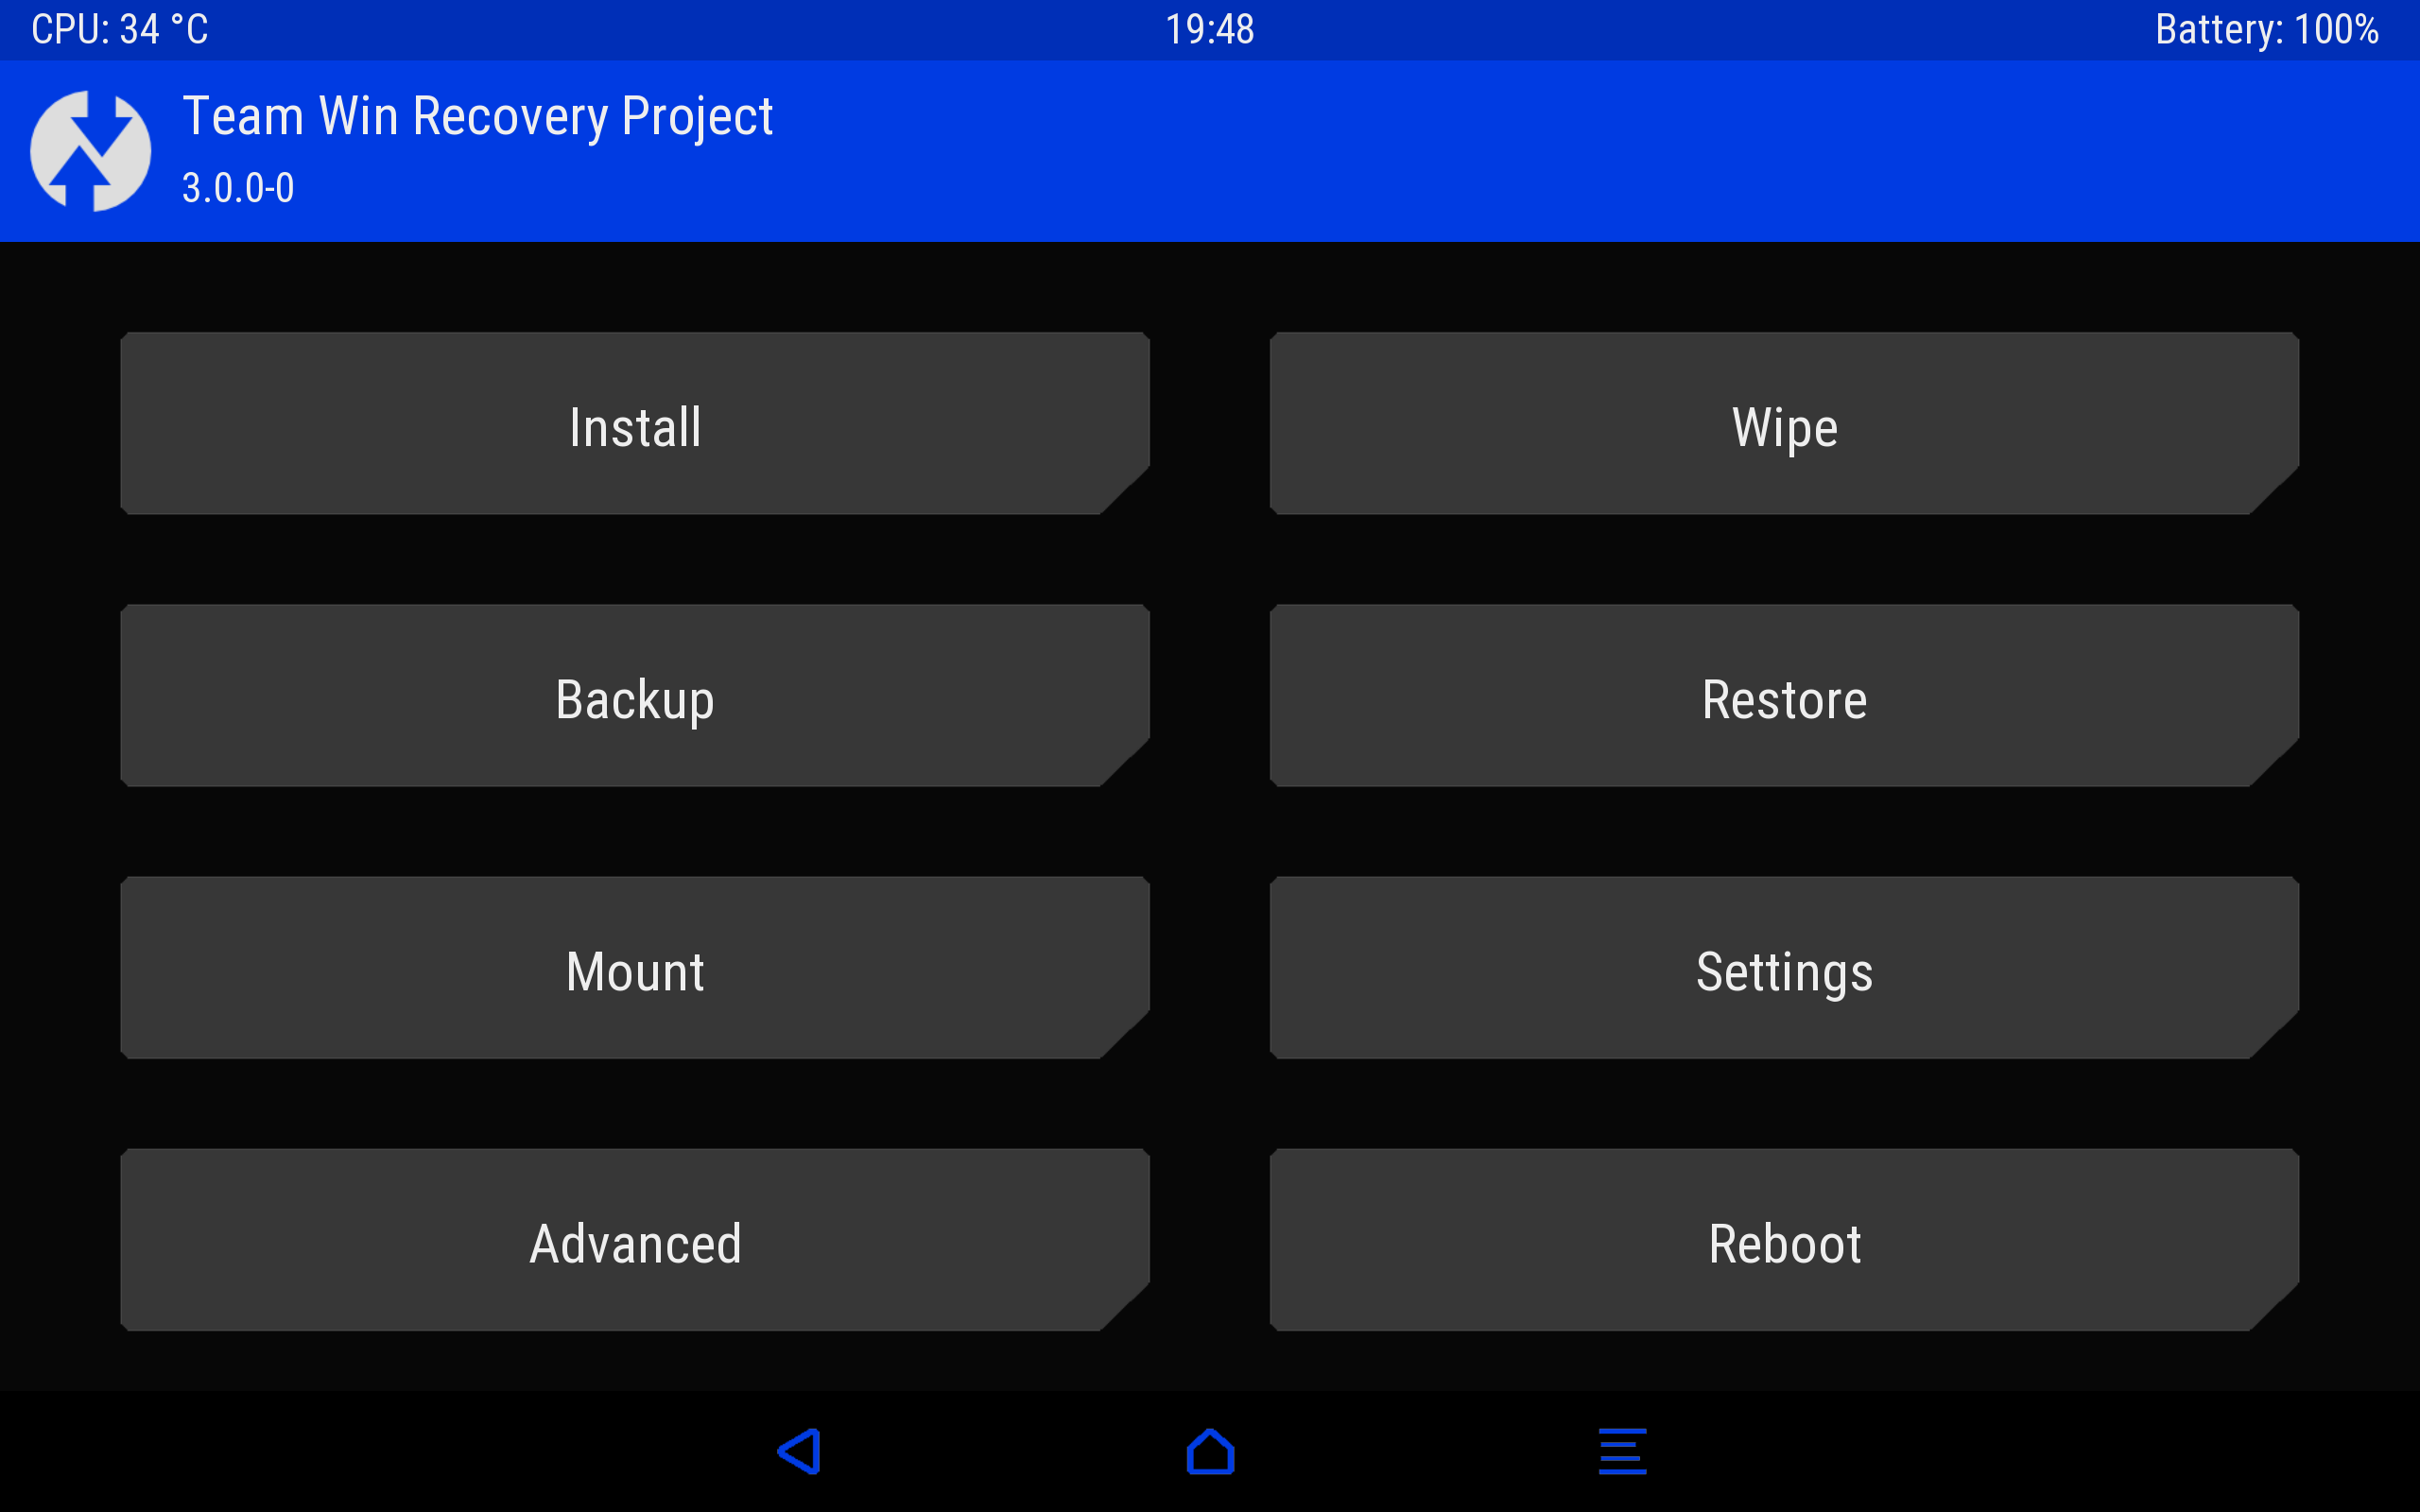 TWRP (Team Win Recovery Project) is an open-source software custom recovery image for Android-based devices.